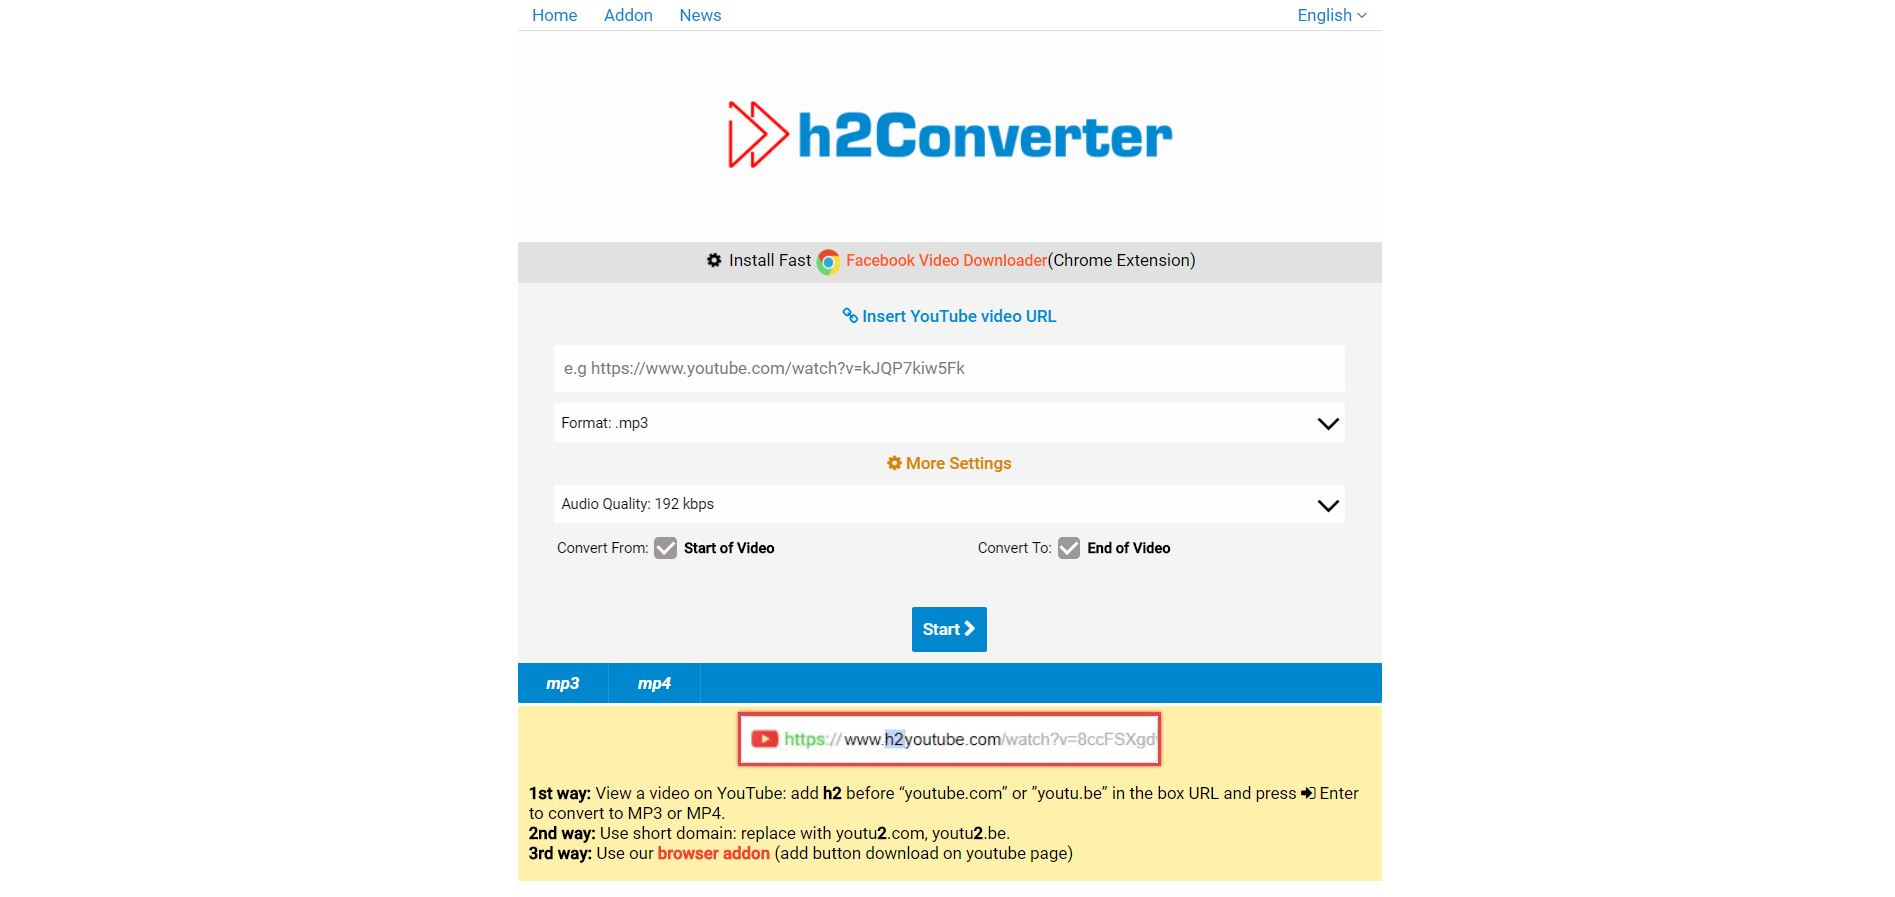 h2converter Review - converterix - YouTube MP3 Converter